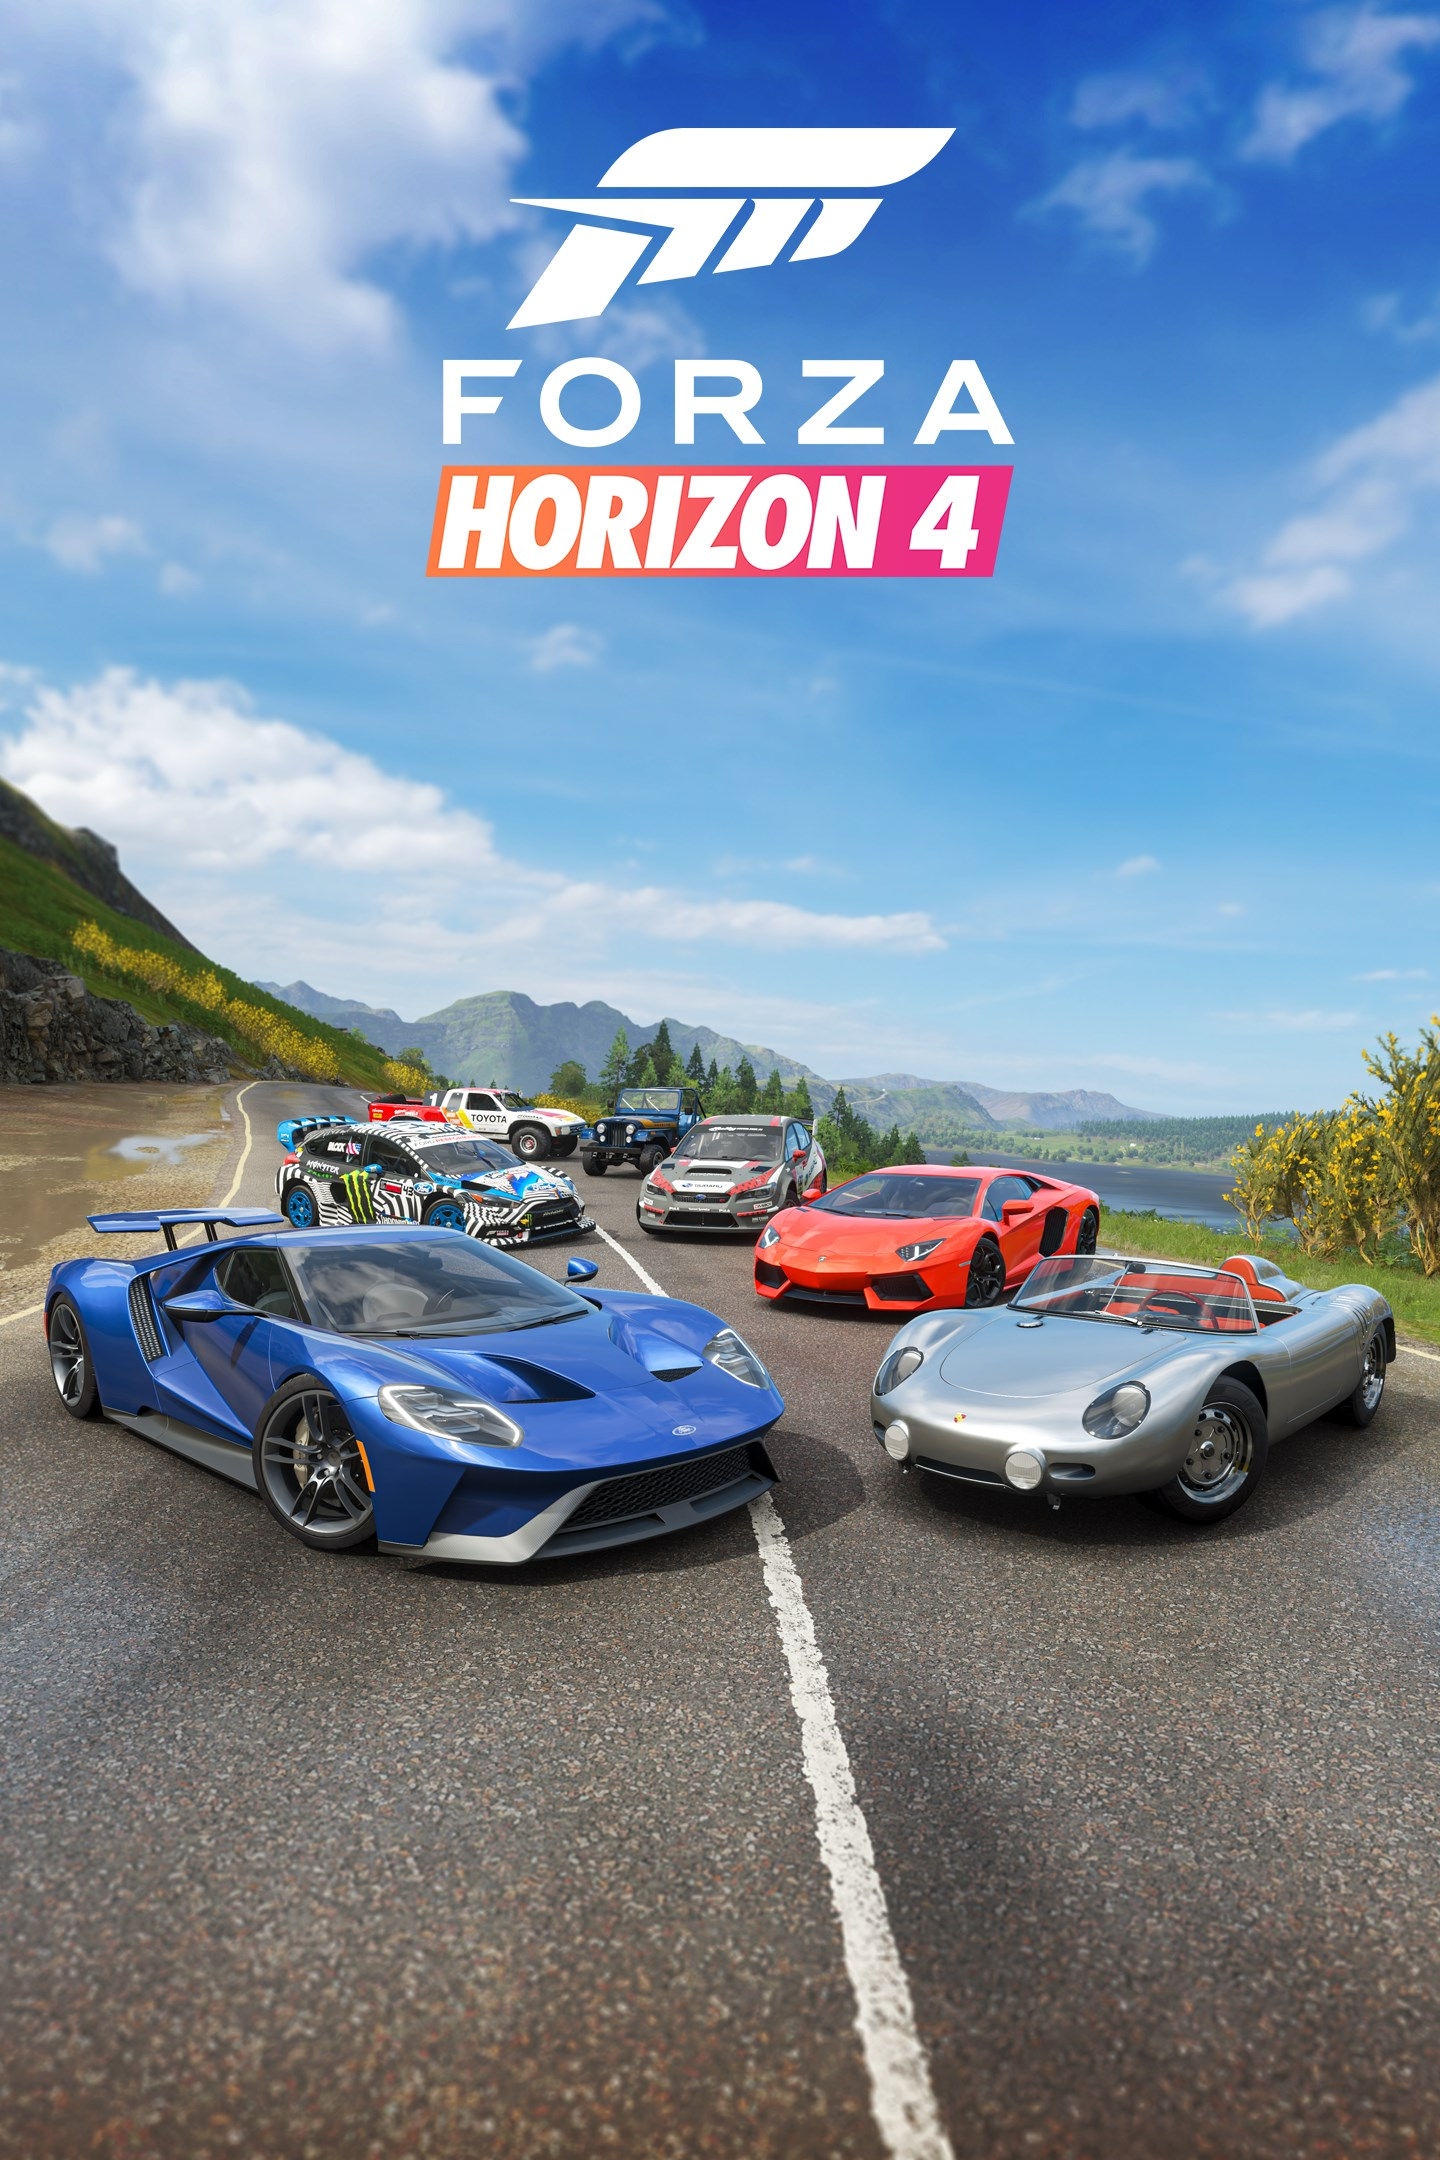 Forza Horizon 4/Welcome Pack